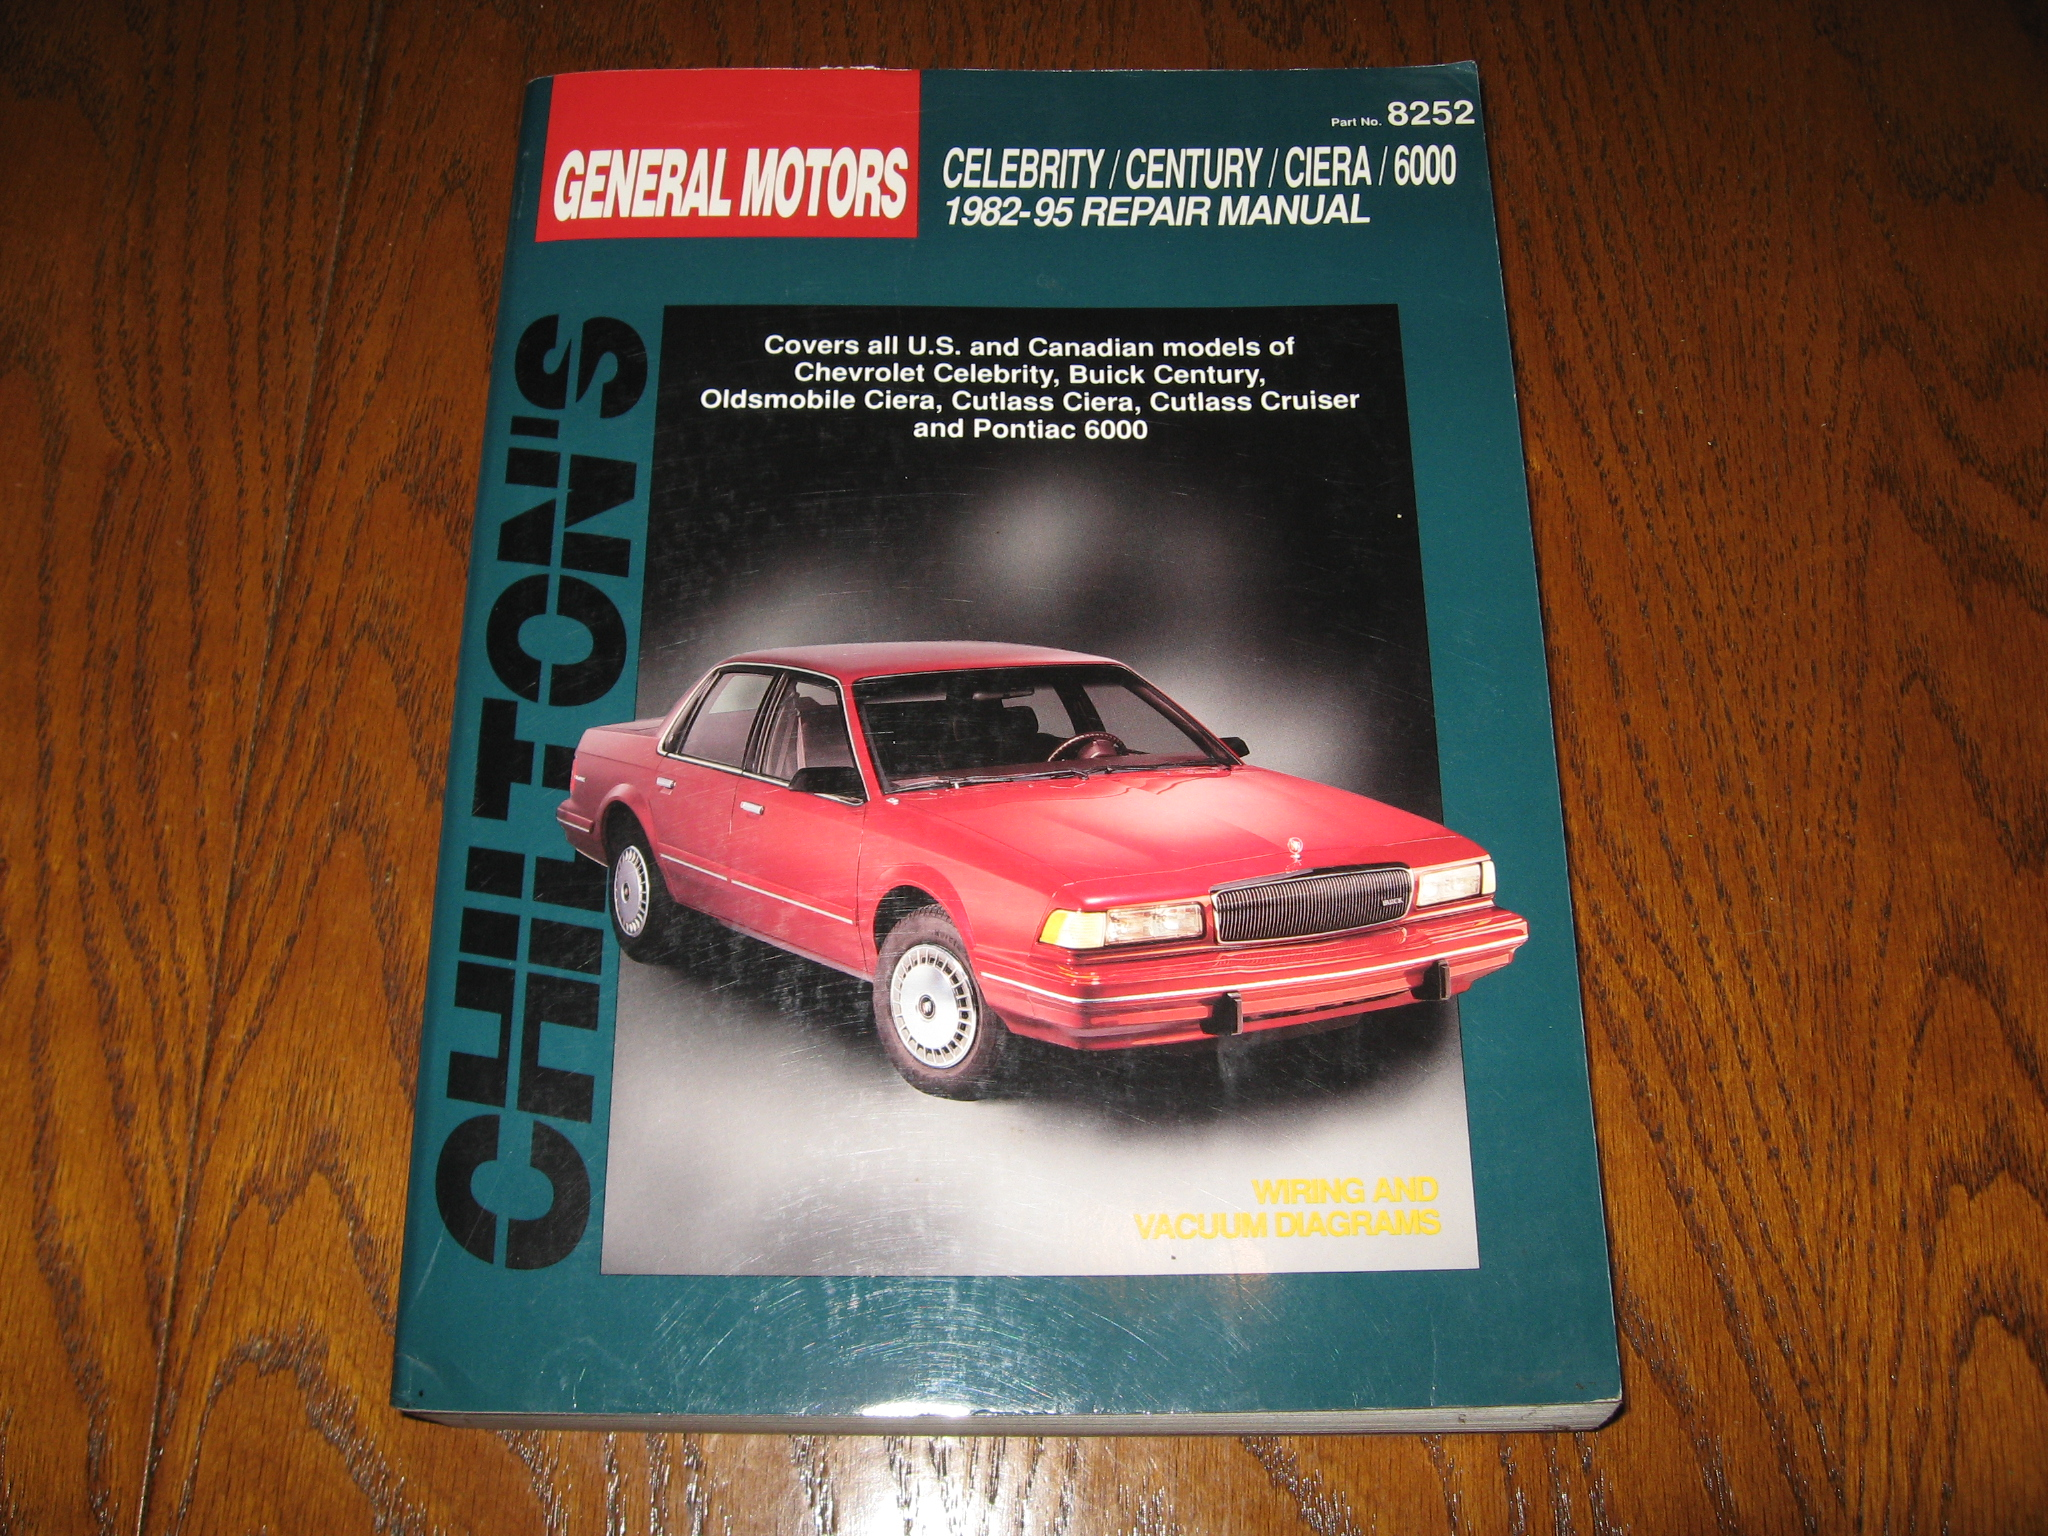 100 2001 Monte Carlo Ss Owners Manual 04 05 Chevy